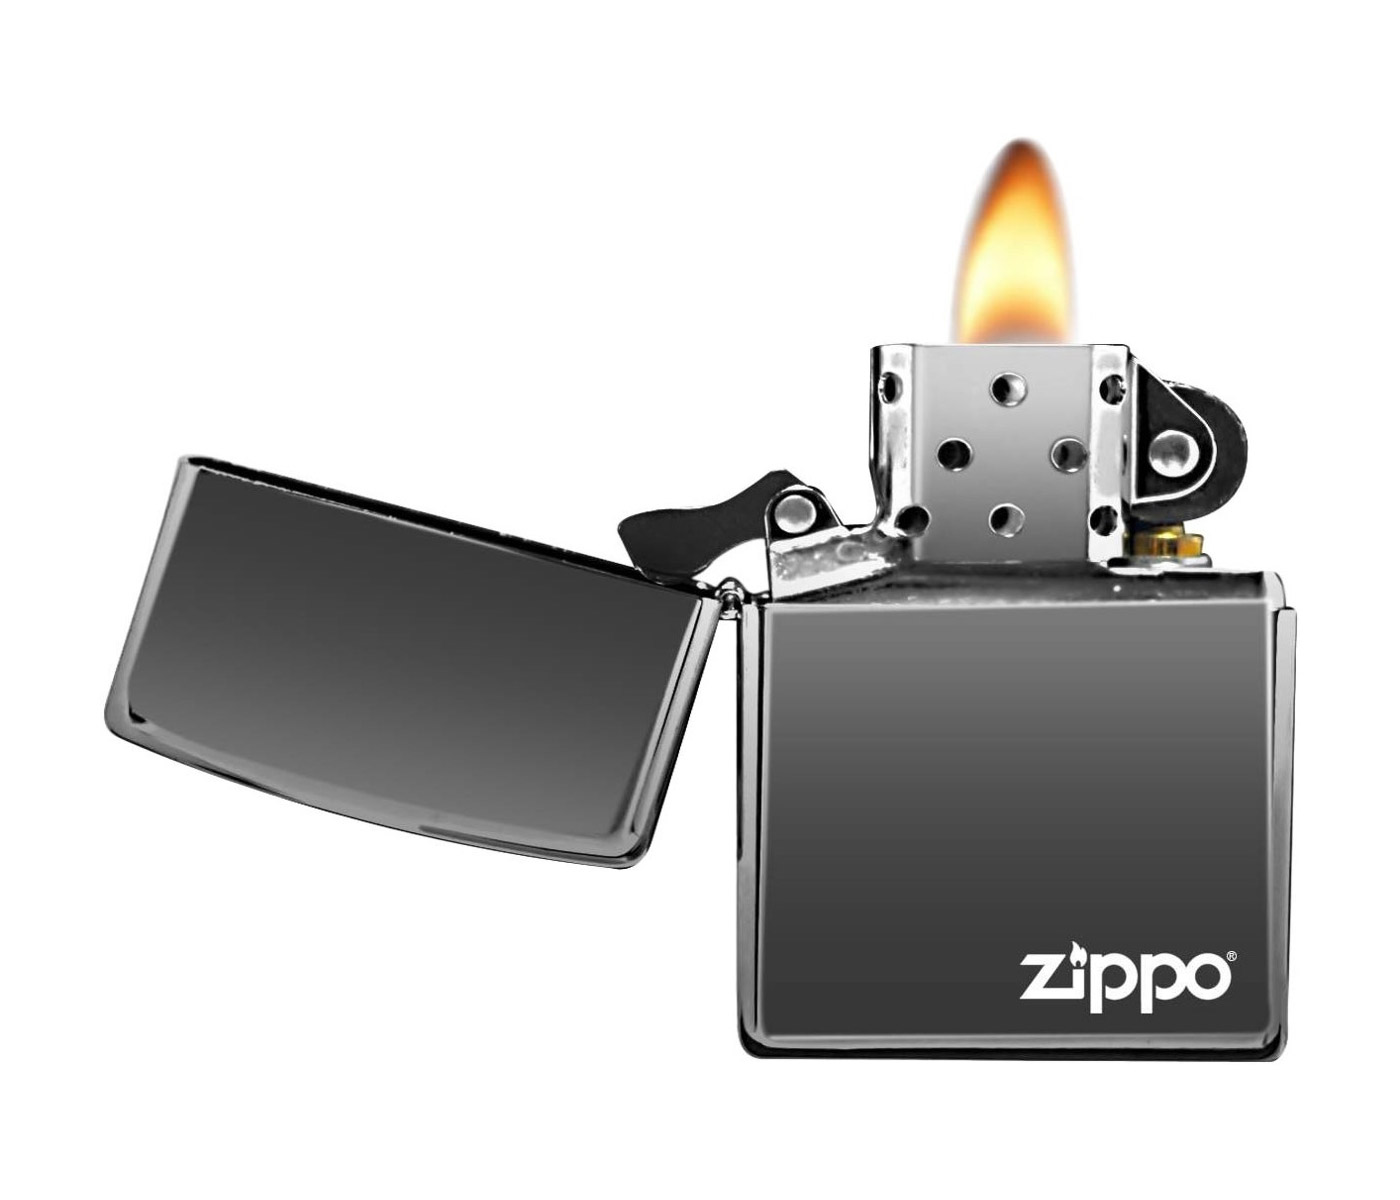 Get A Free Original Zippo Lighter From Marlboro!